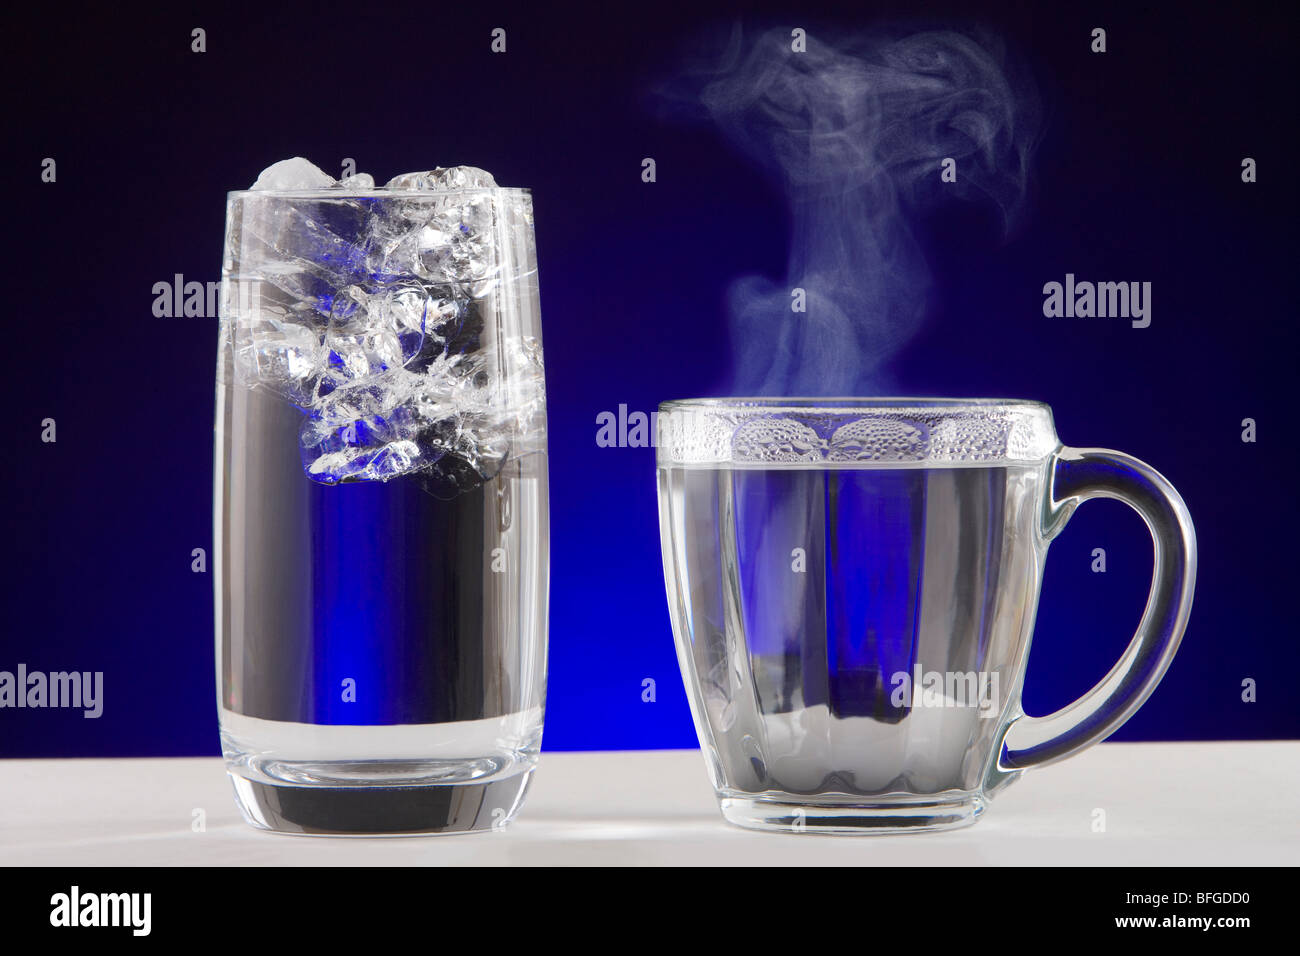 Ice Steam Water. A glass of ice water and a tea cup of hot steaming water. - Stock Image